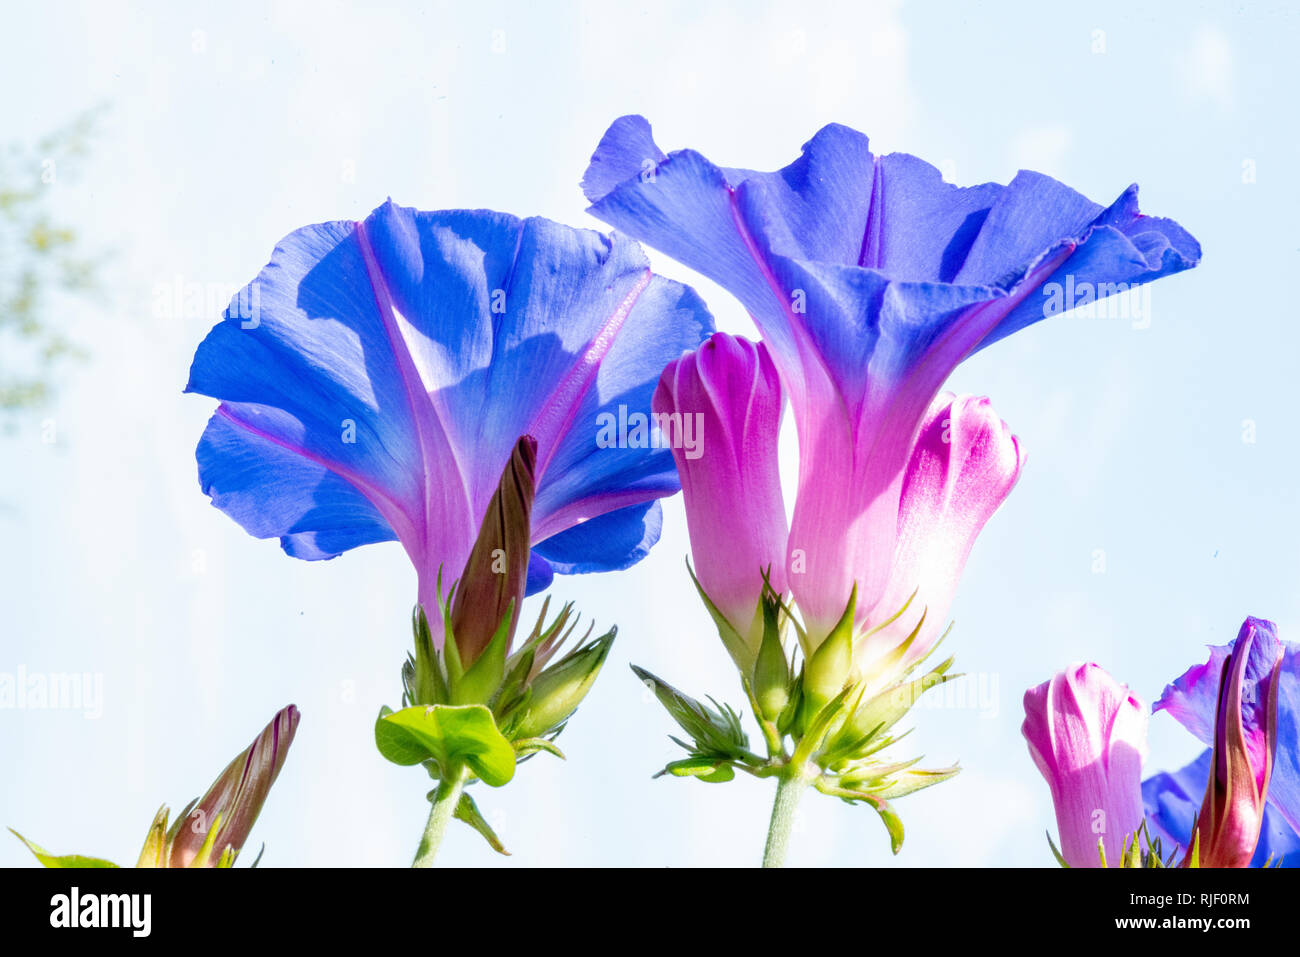 blue morning glory blooming with deep blue blossoms - Stock Image